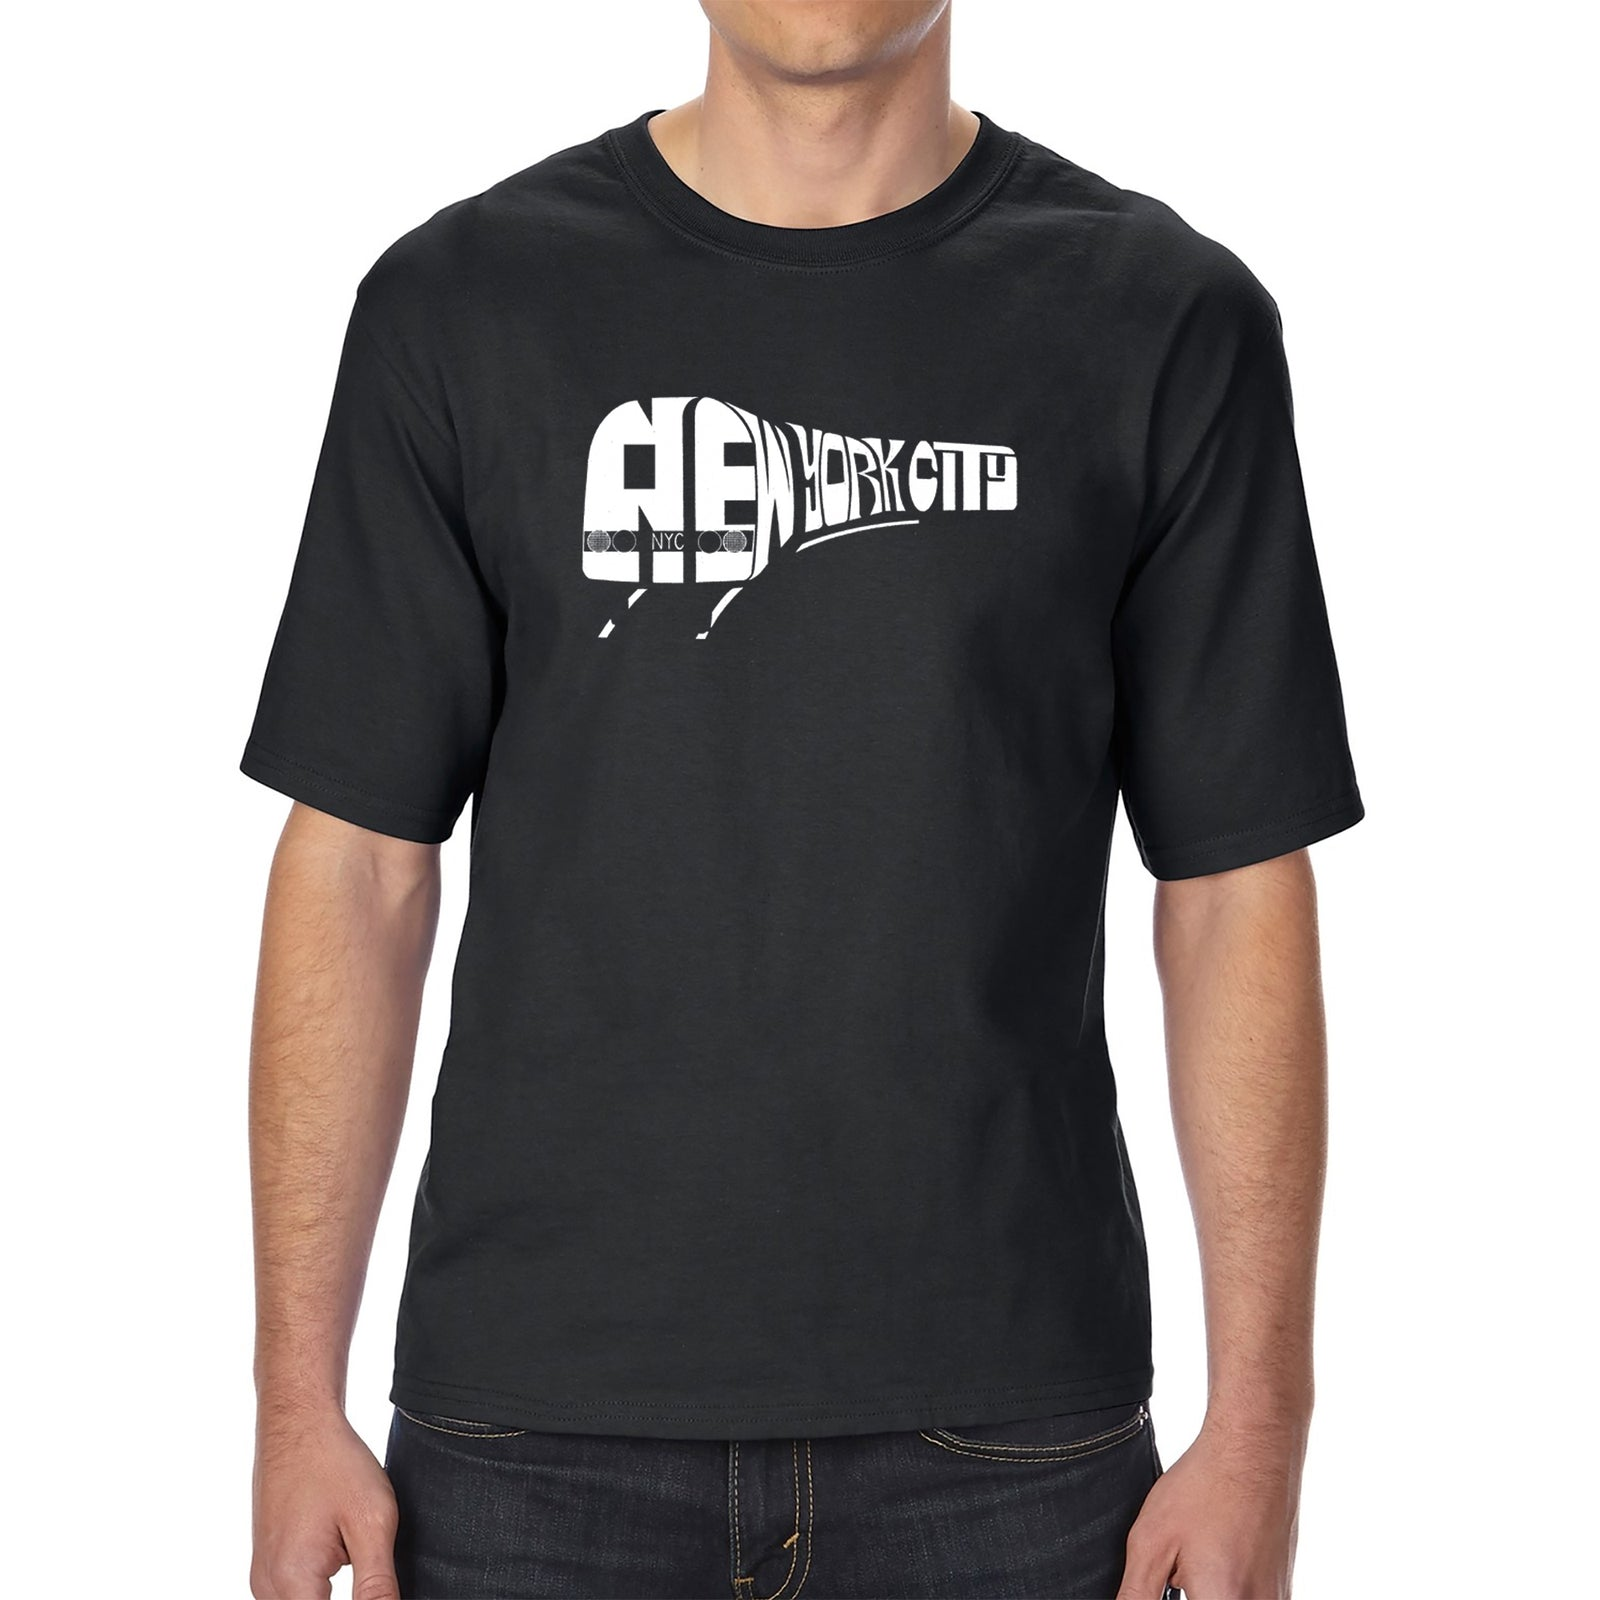 Men's Tall and Long Word Art T-shirt - NY SUBWAY